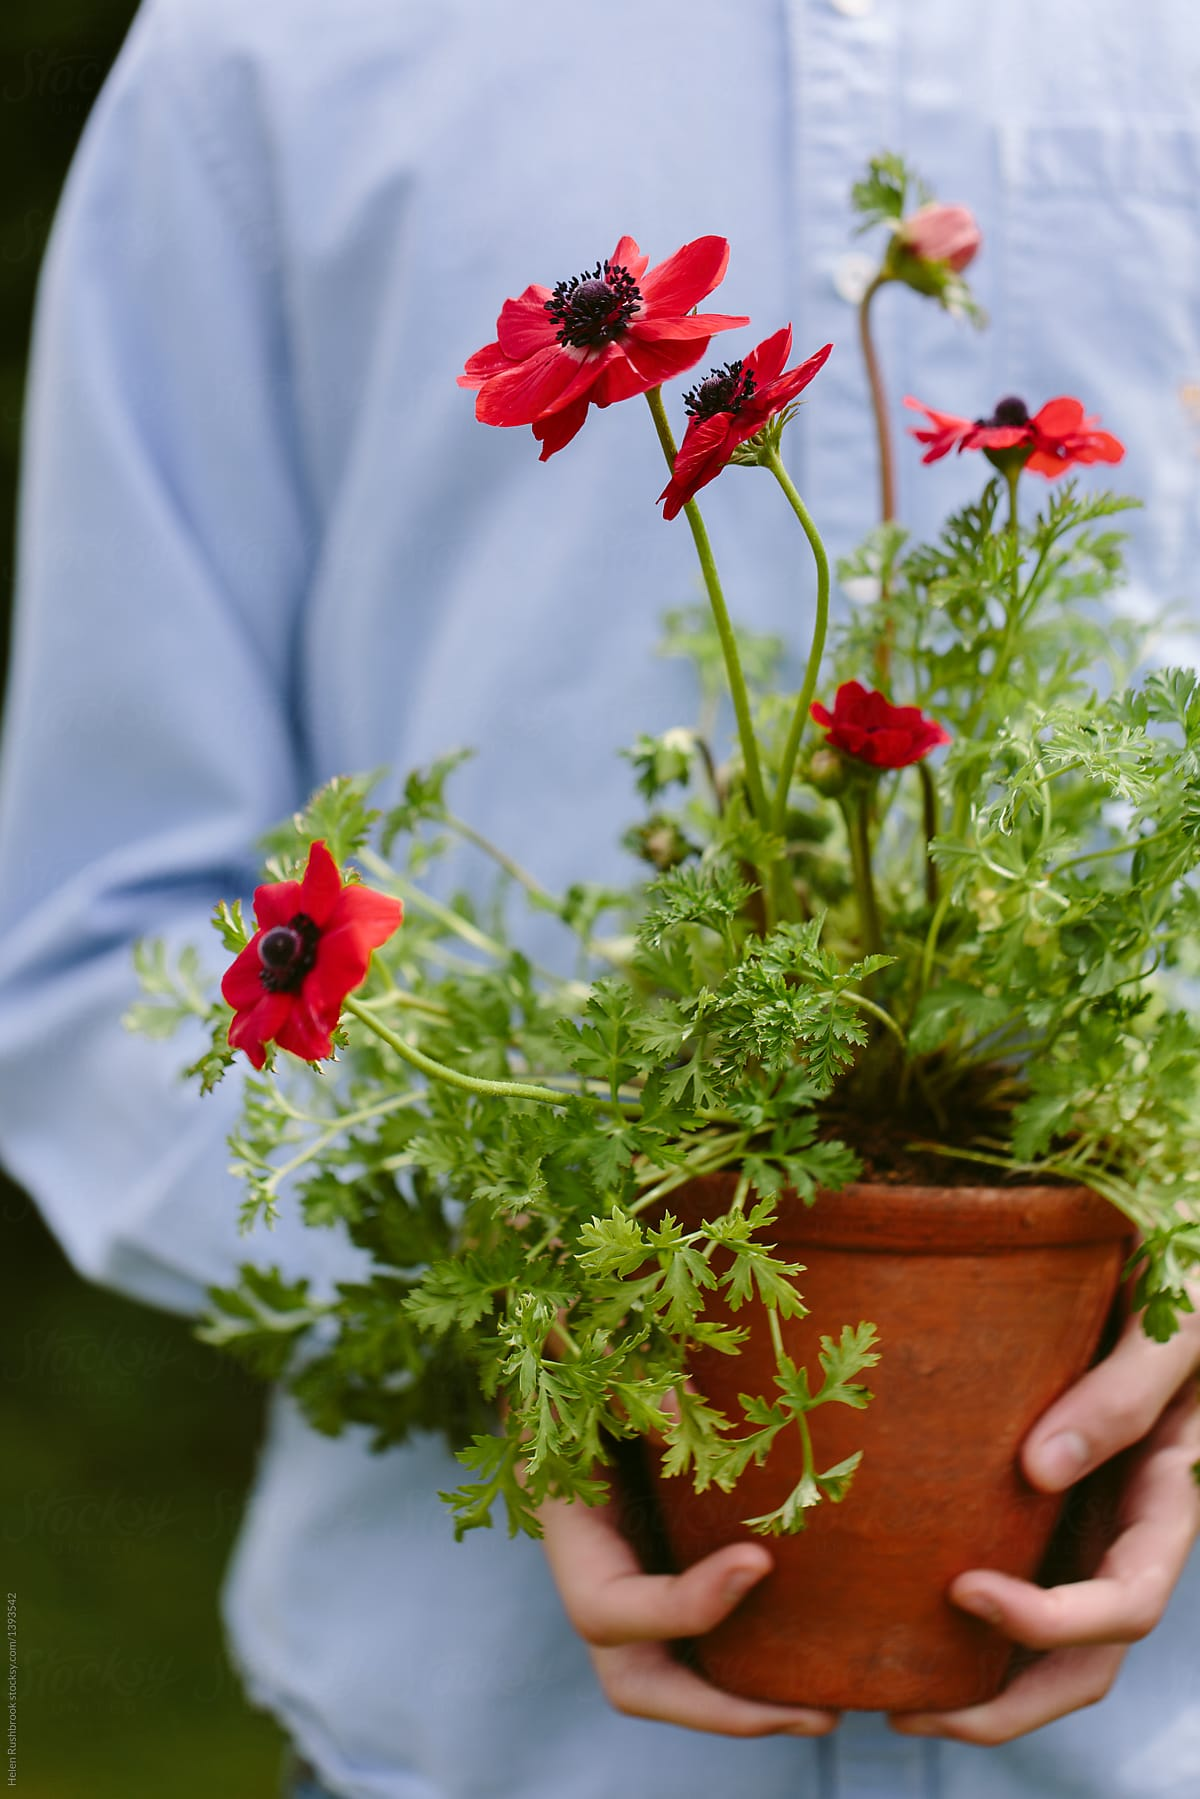 Hands holding a red anemone flower in a clay pot. by Helen Rushbrook for Stocksy